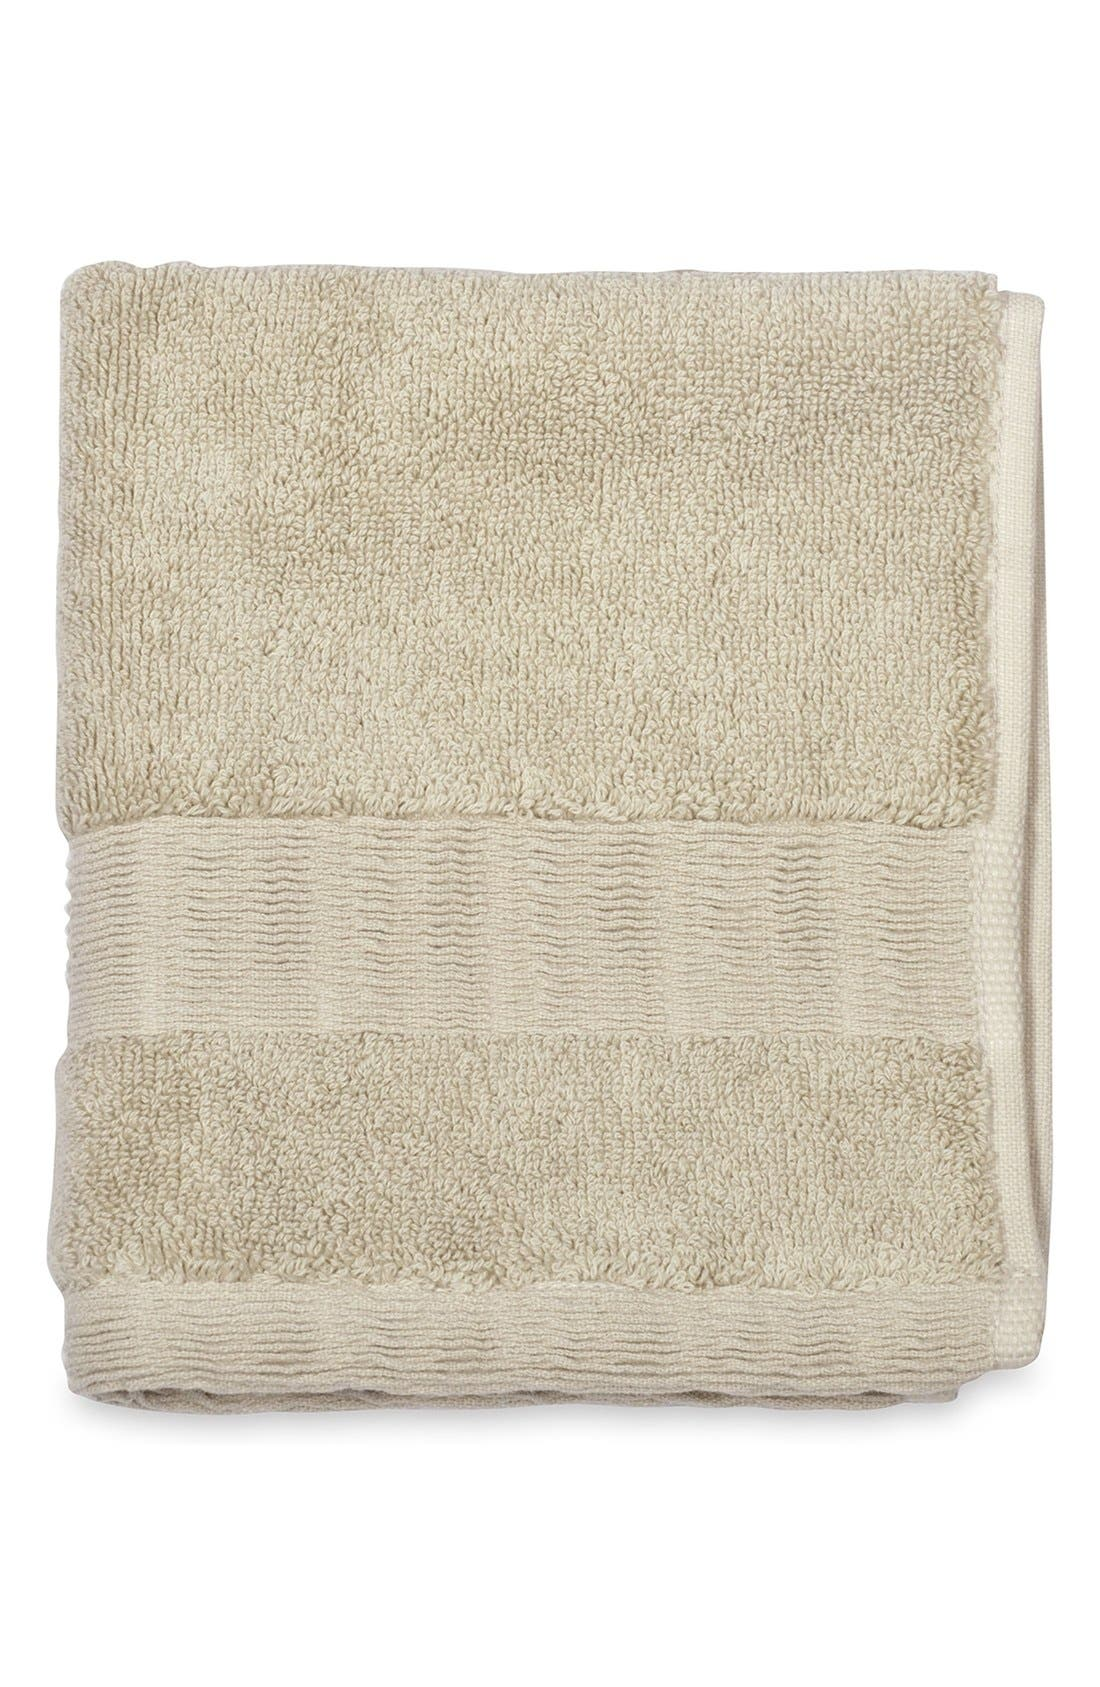 Mercer Wash Towel,                             Main thumbnail 1, color,                             STONE